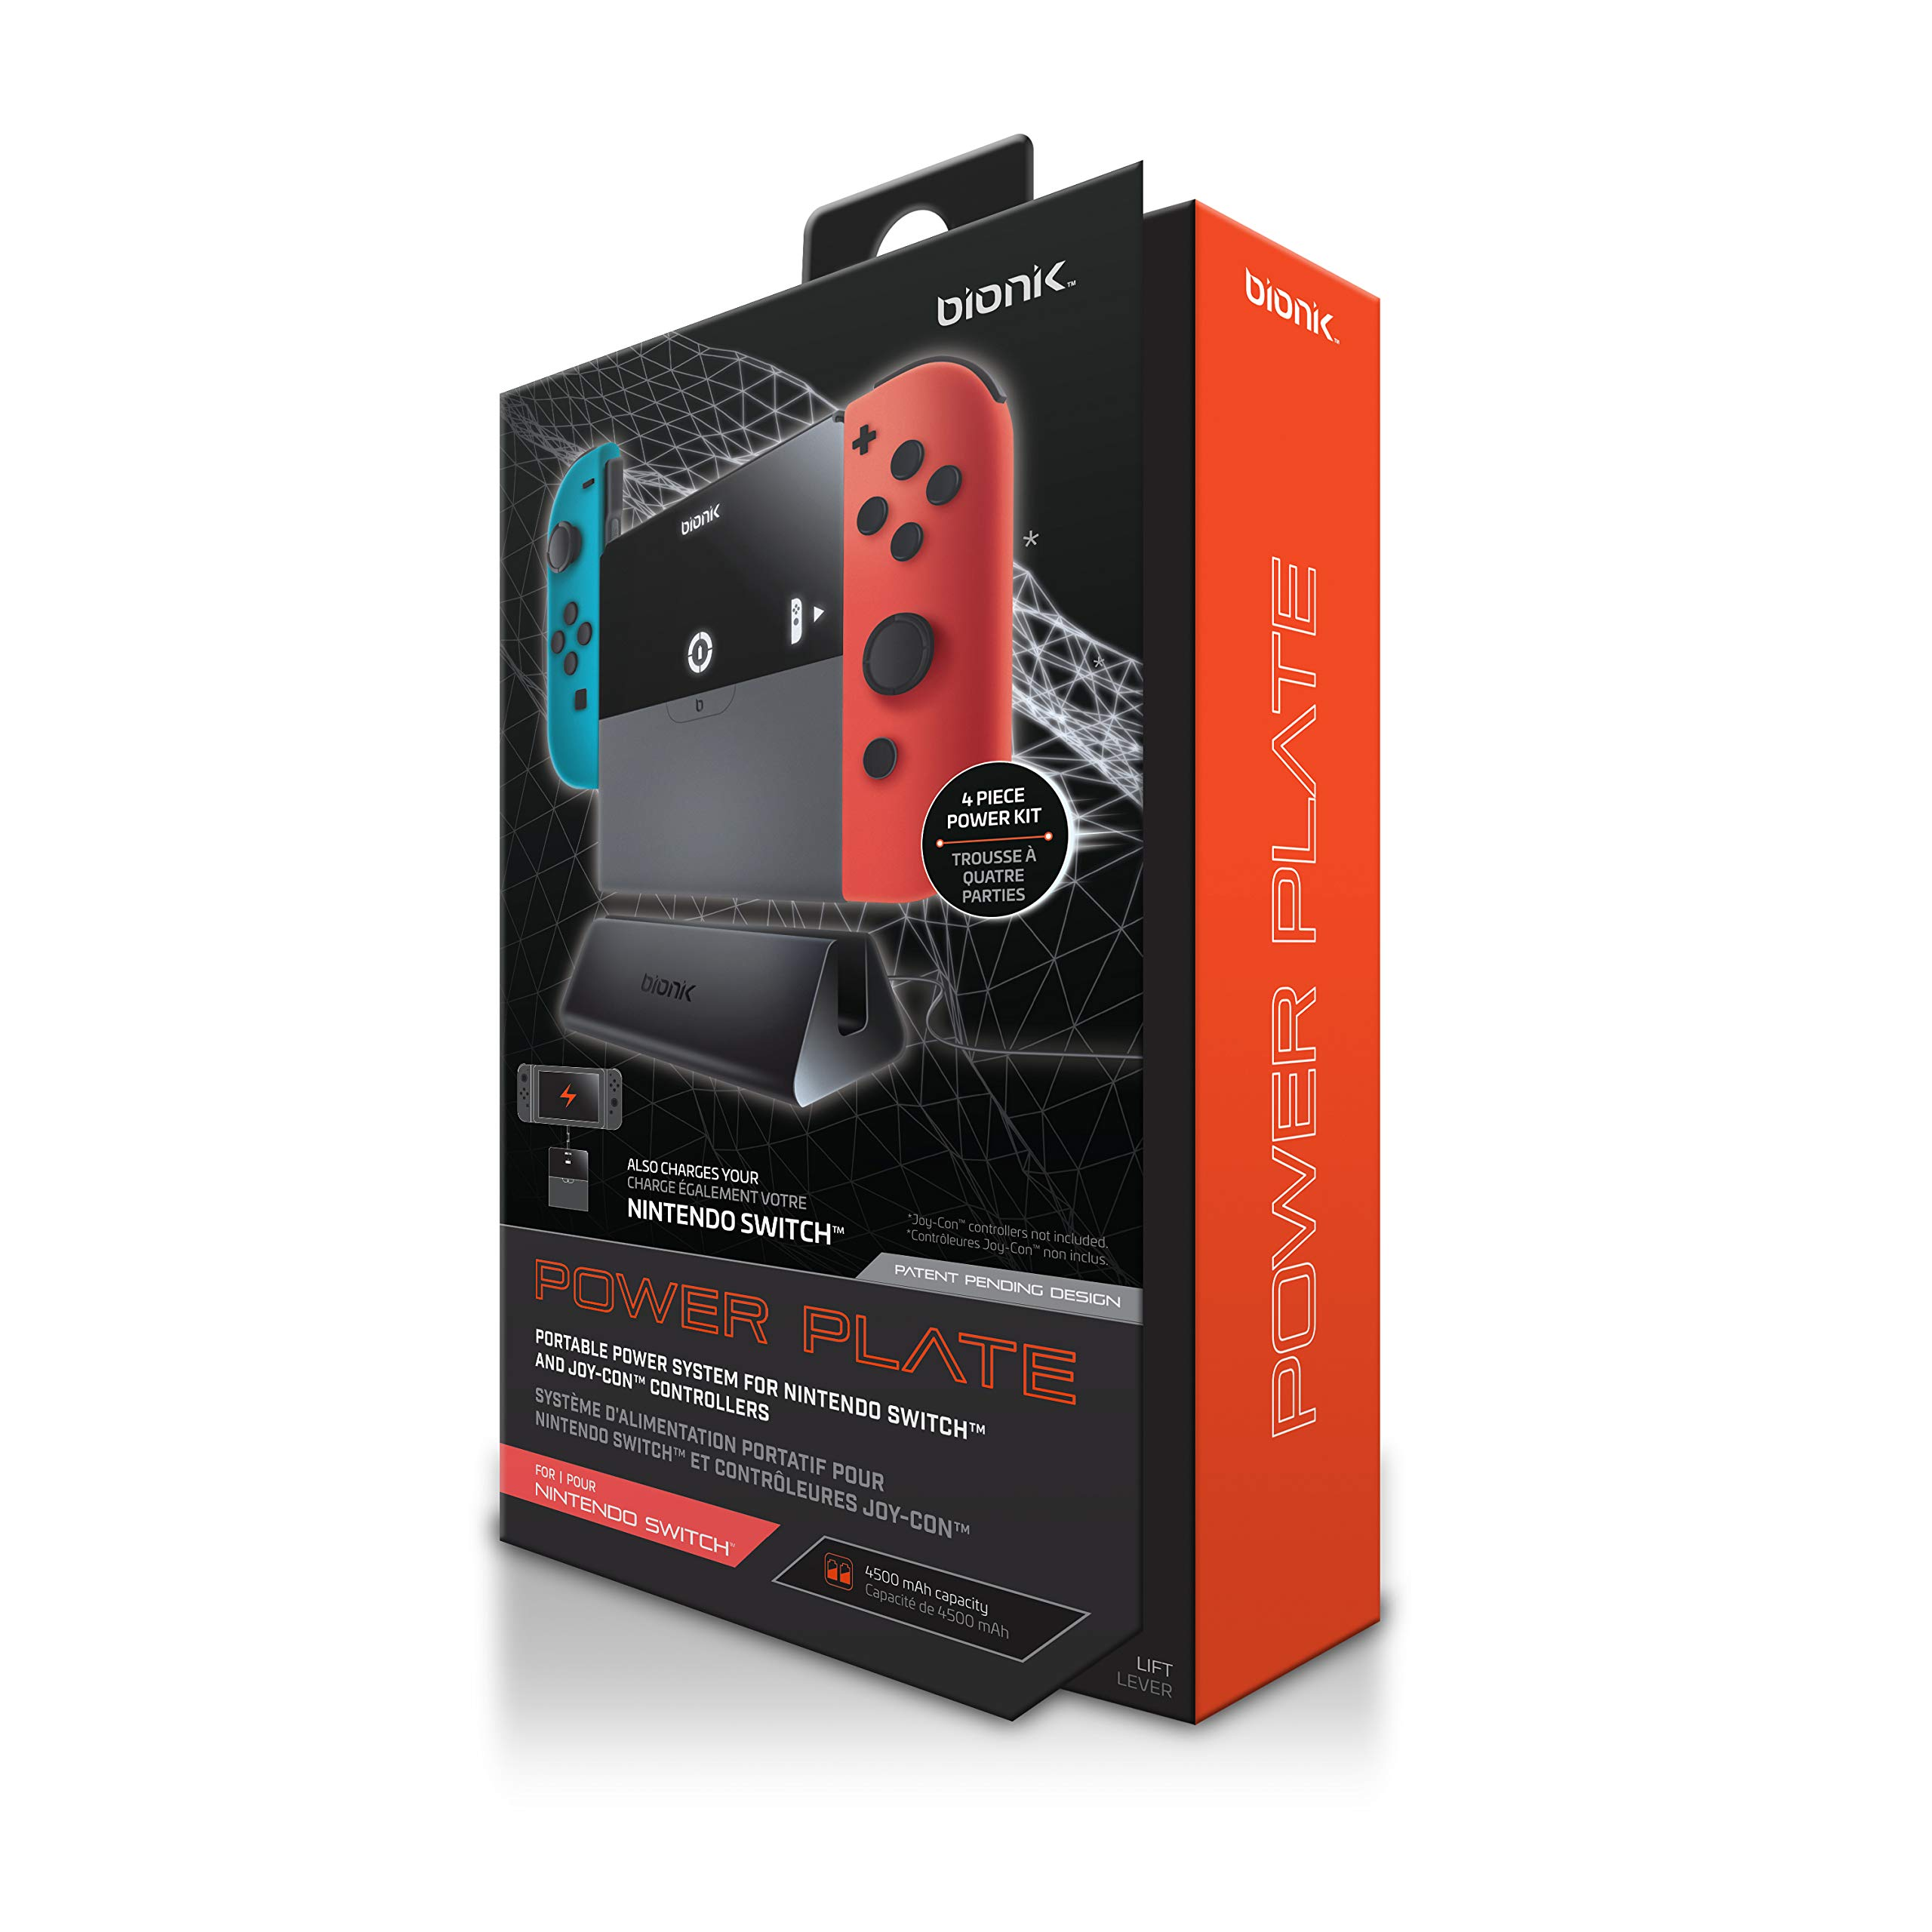 Bionik Power Plate Charging Grip: Compatible with Nintendo Switch, Slim 5500 mAh Battery Pack, Recharge Switch or 2 Joy…